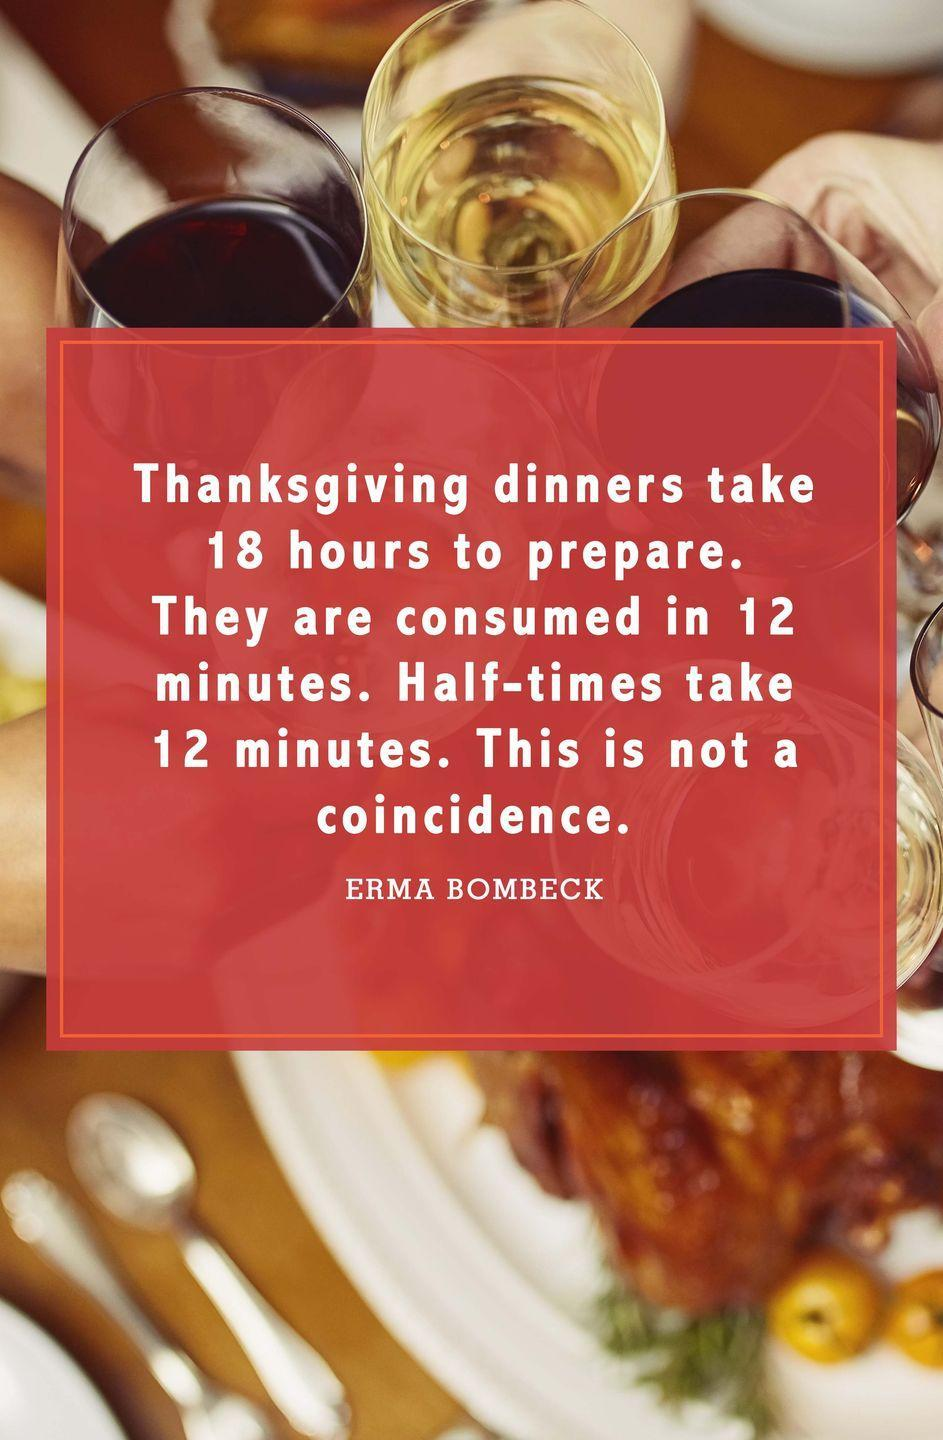 """<p>""""Thanksgiving dinners take 18 hours to prepare. They are consumed in 12 minutes. Half-times take 12 minutes. This is not a coincidence.""""</p>"""